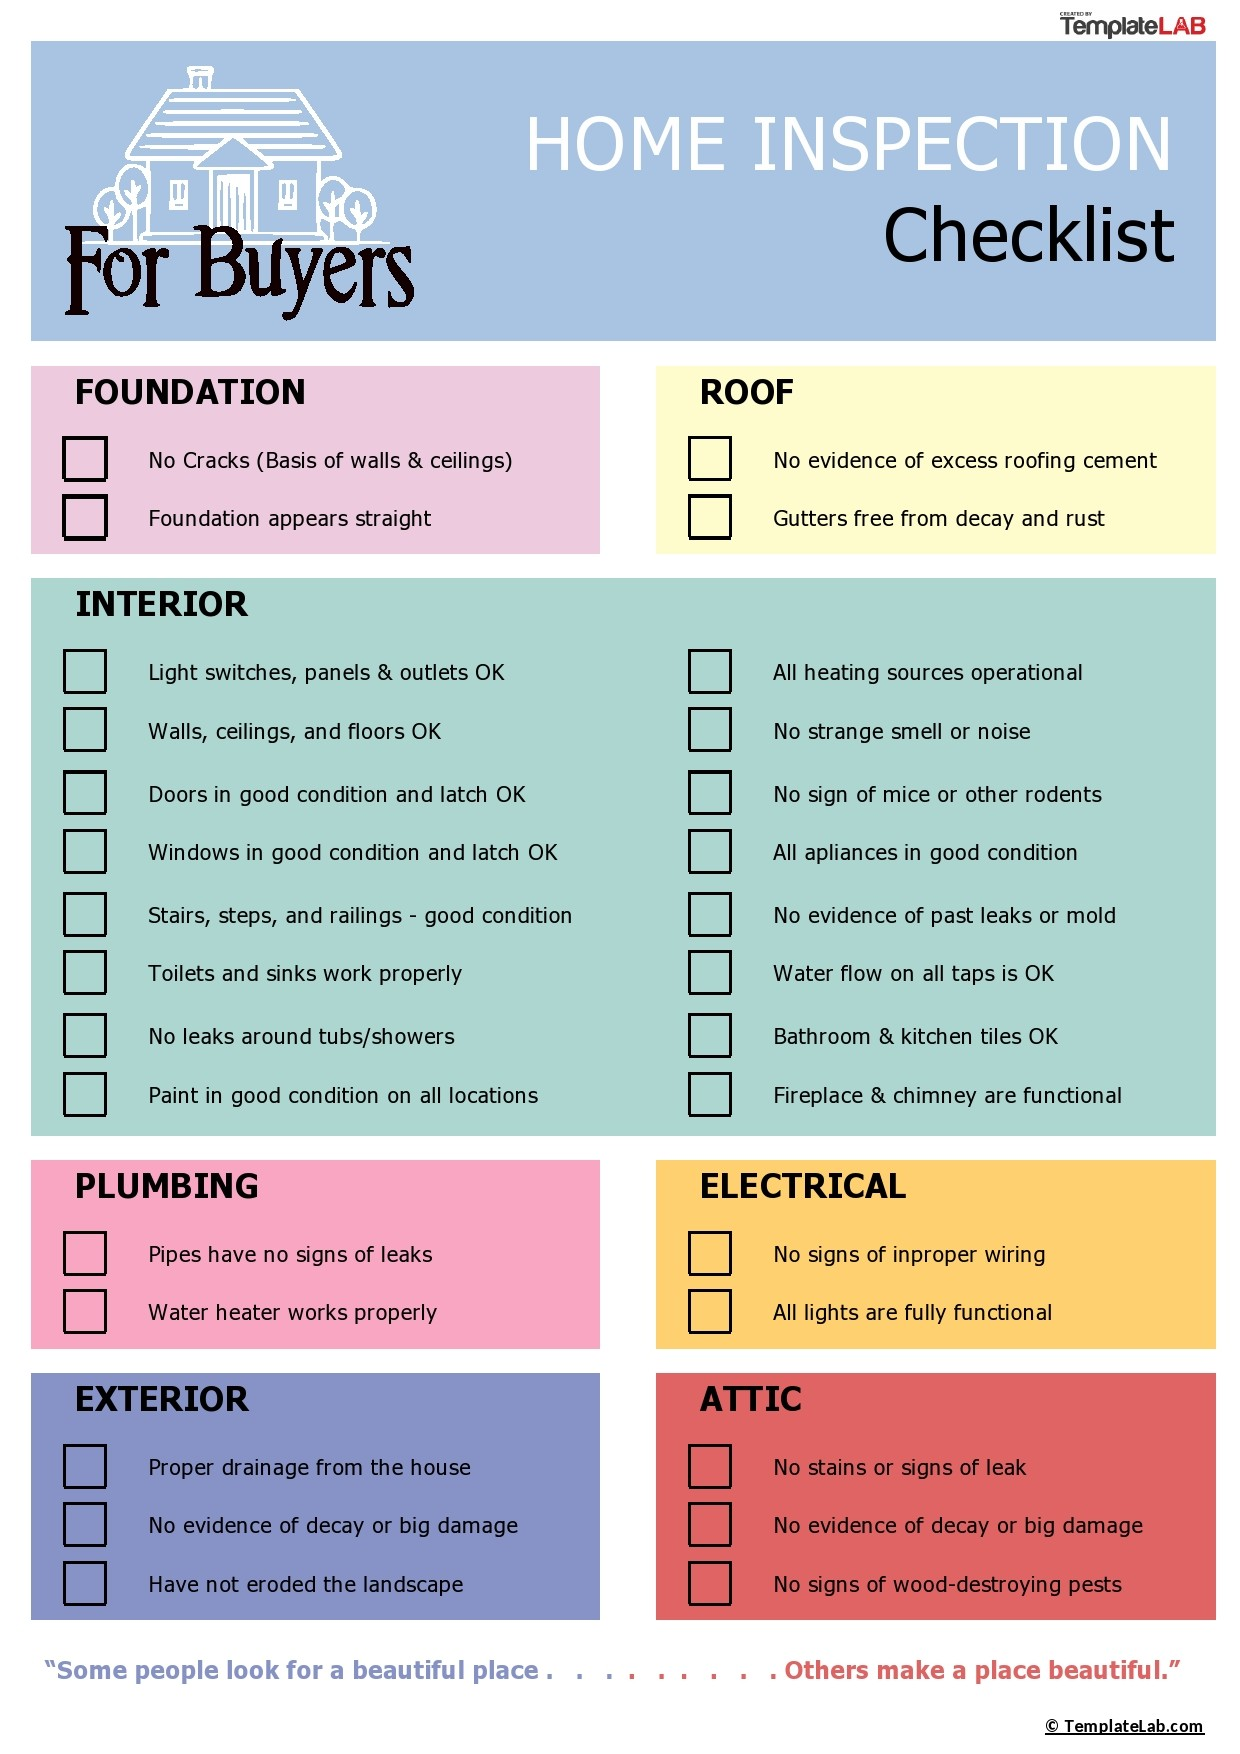 20 Printable Home Inspection Checklists Word